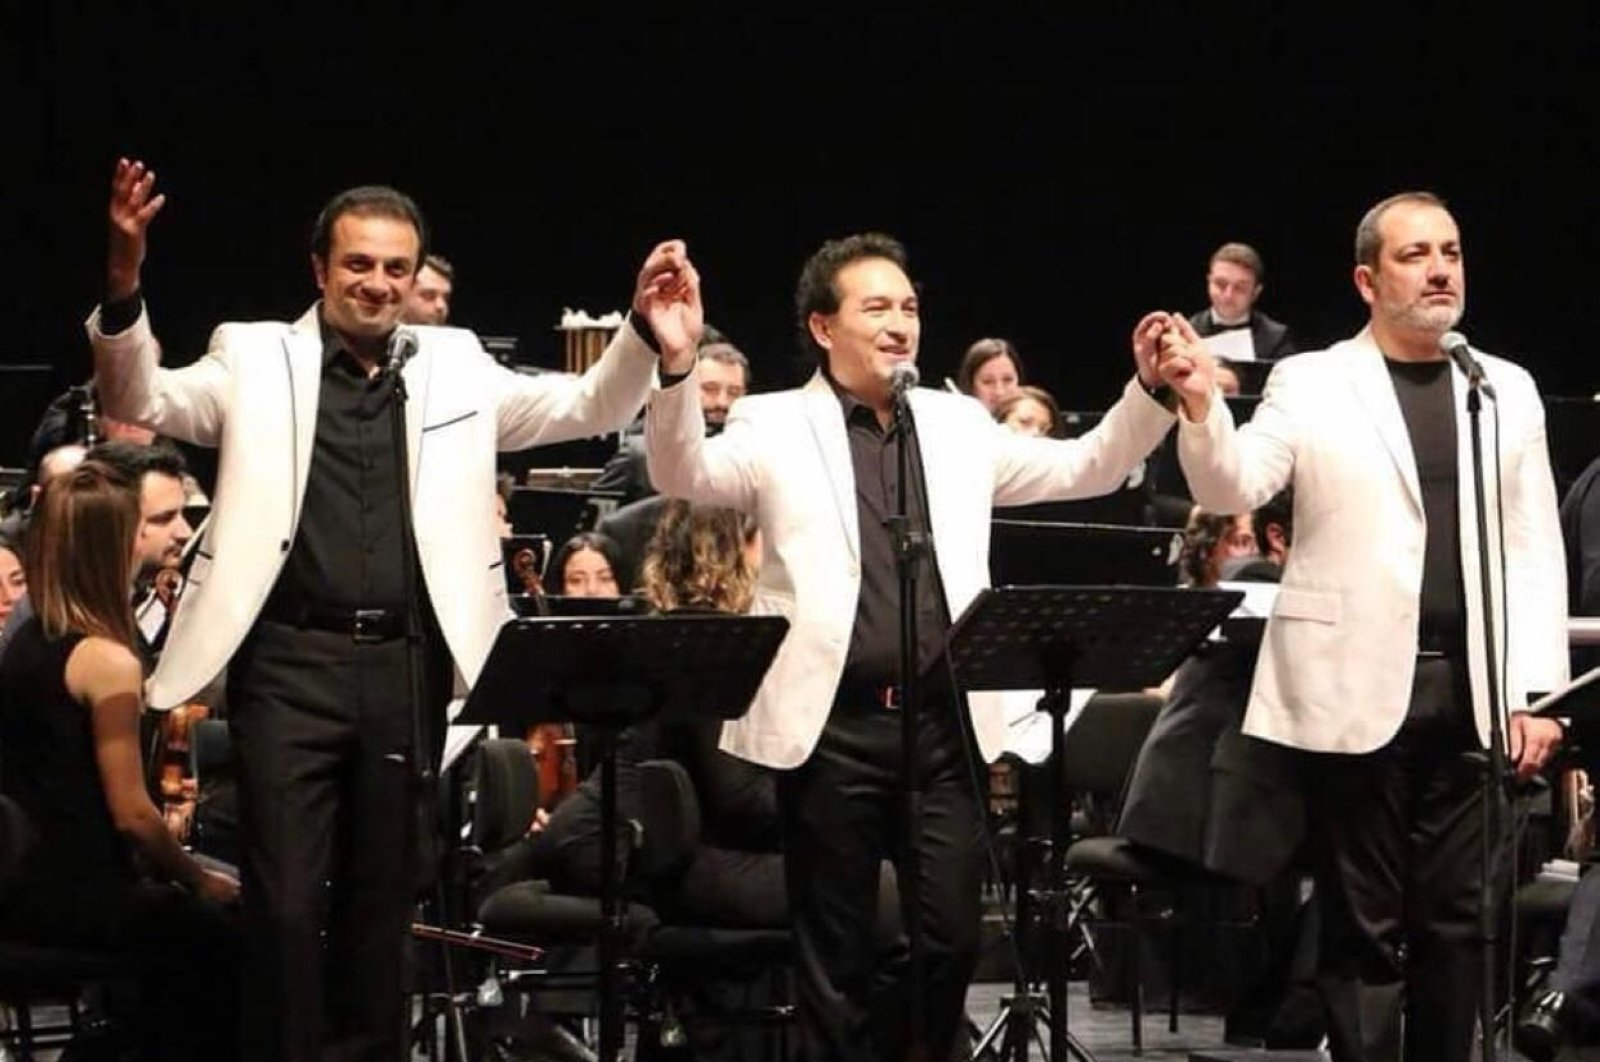 The Three Tenors Şenol Talınlı (L), Ayhan Uştuk (C) and Aykut Çınar.